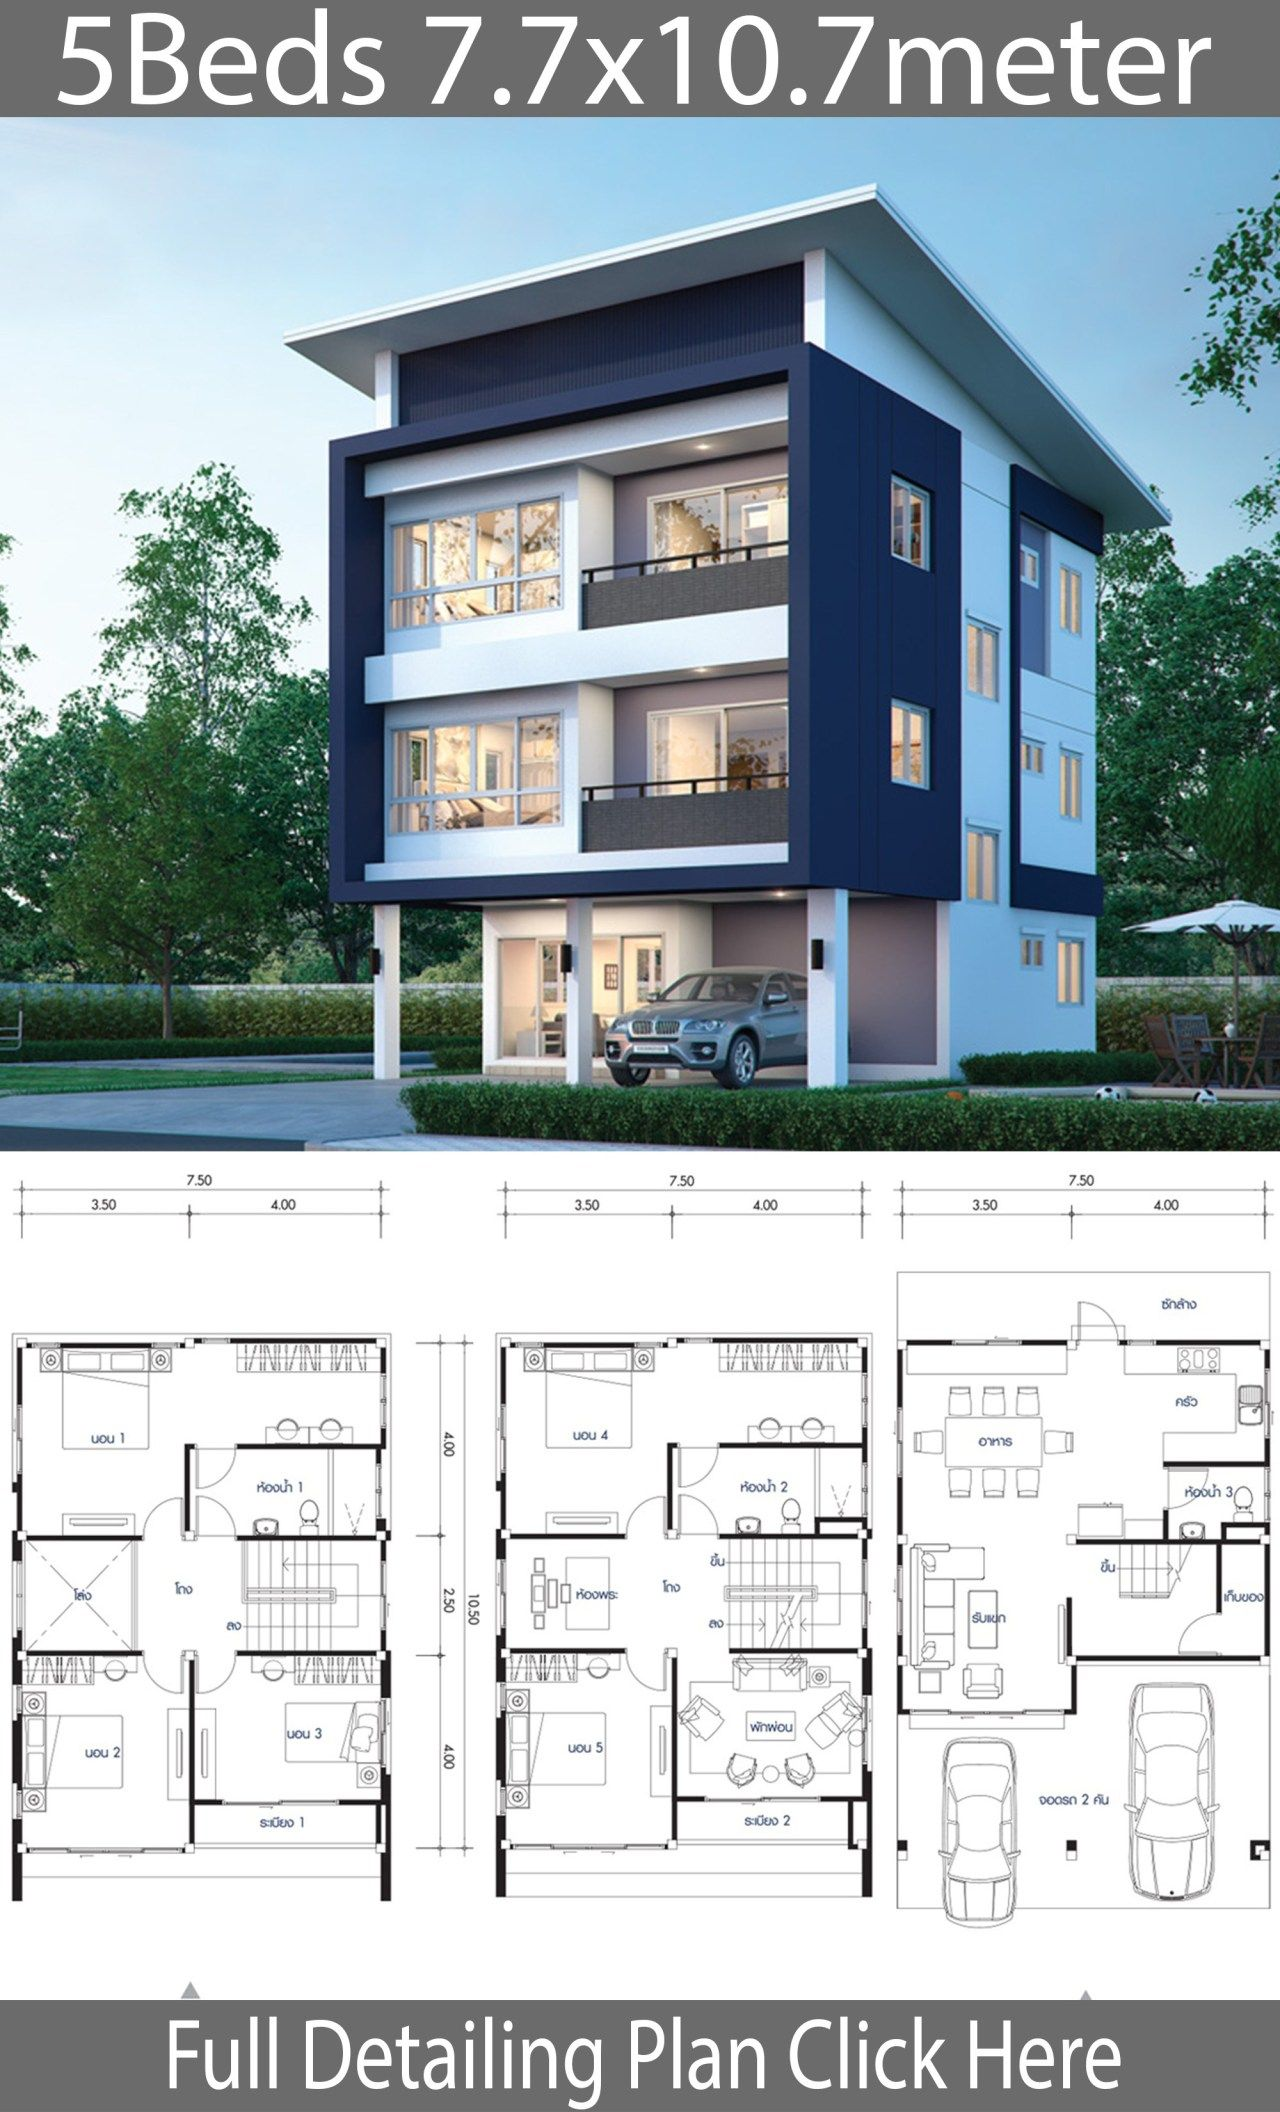 House Design Plan 7 7x10 7m With 5 Bedrooms Home Ideas Narrow House Plans Architectural House Plans Model House Plan